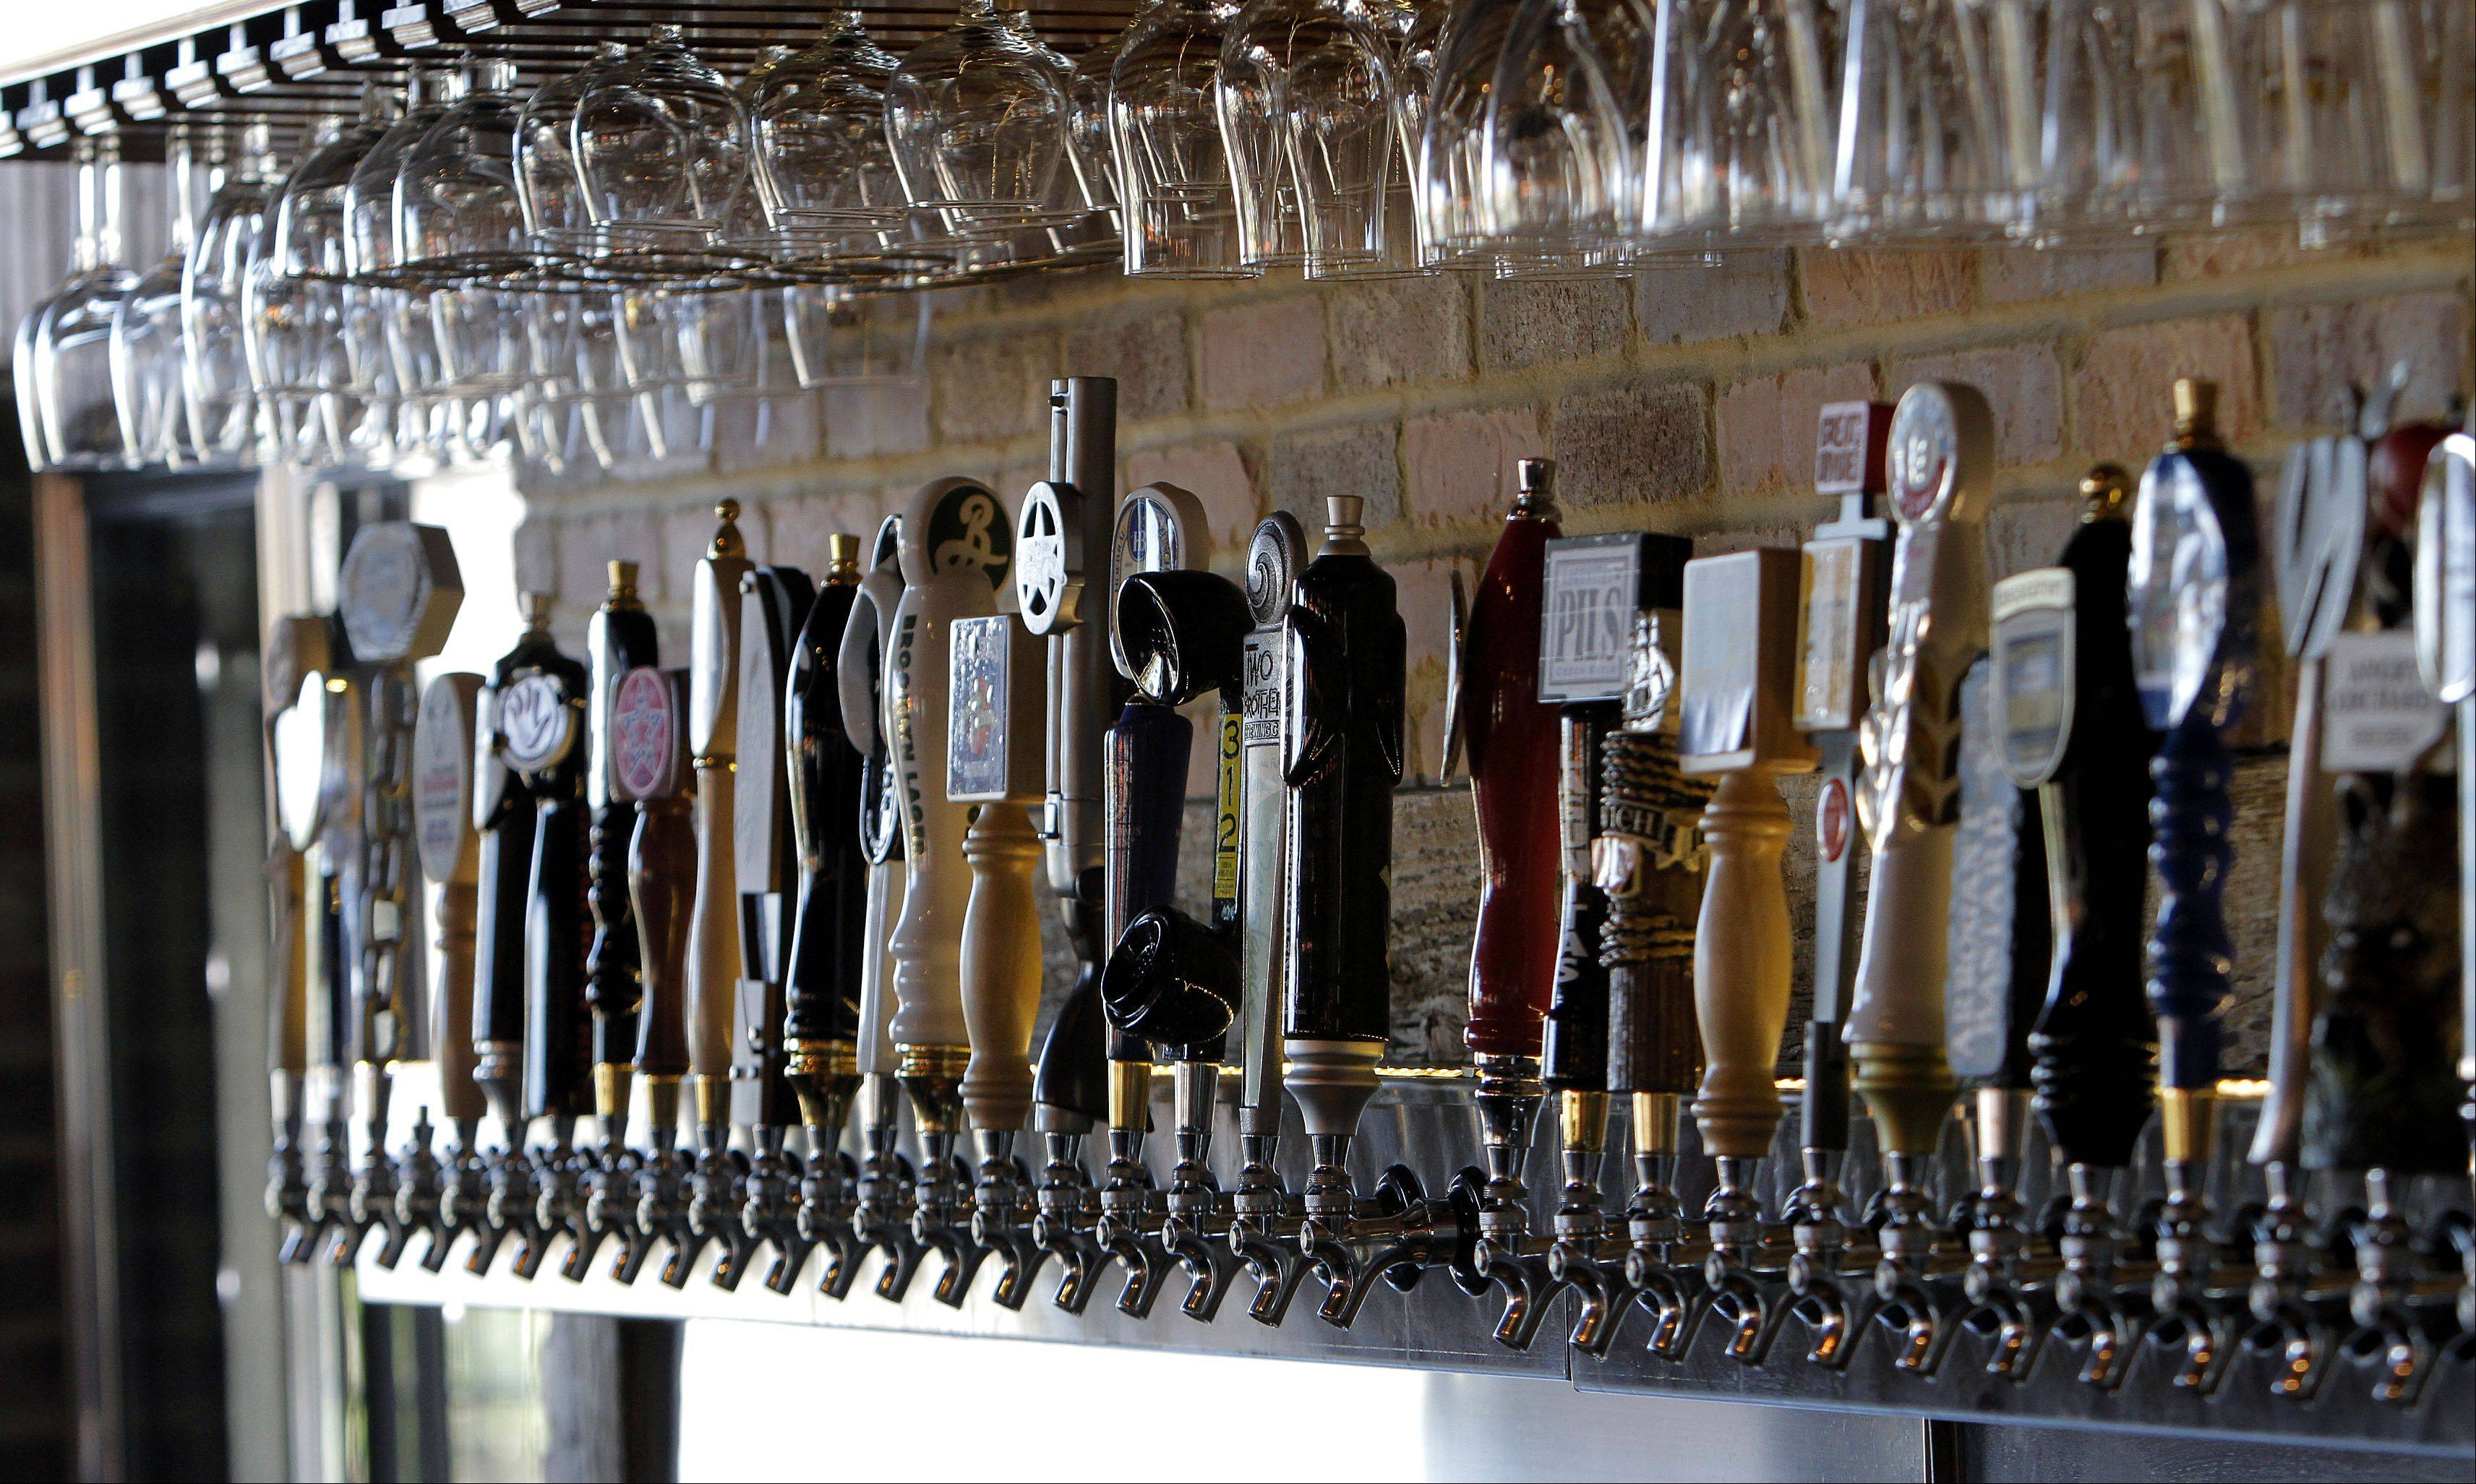 The taps line the back wall at the Beer Market in Vernon Hills, which is a similar concept to the Beer House proposed for Wheeling.